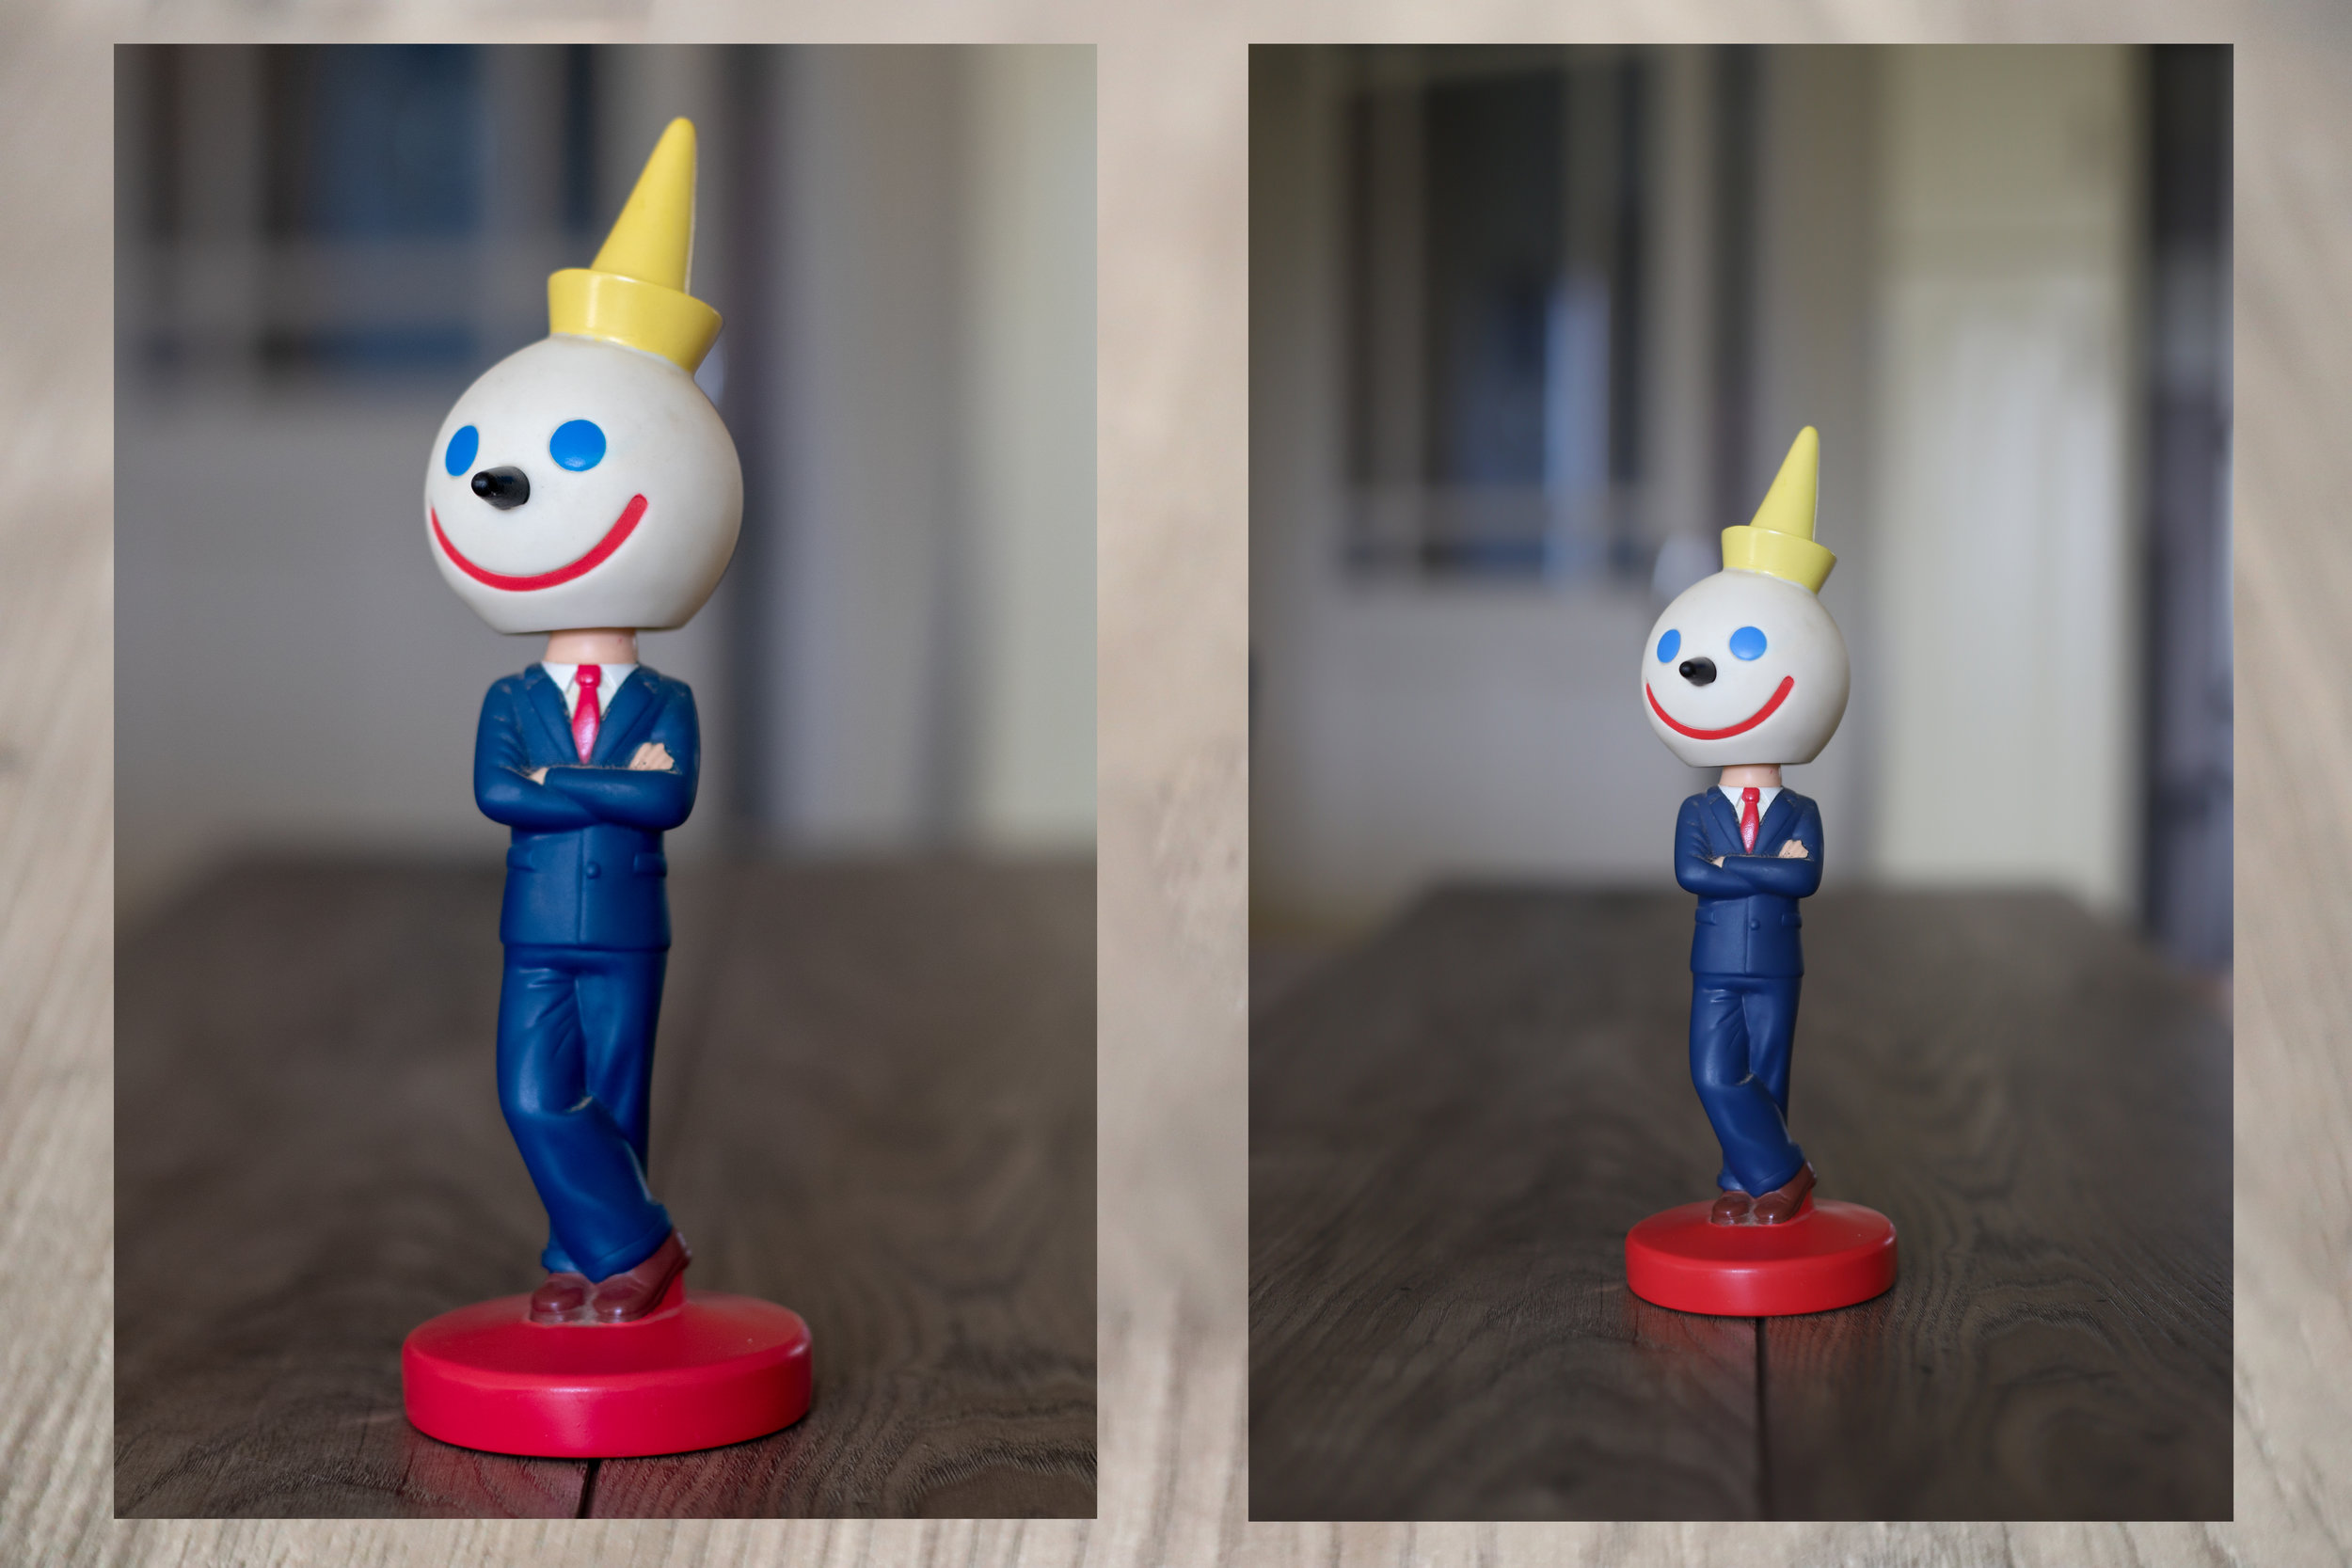 On the left, mounted on an APS-C camera (80D), and on the right, on a full frame (6D Mark II)